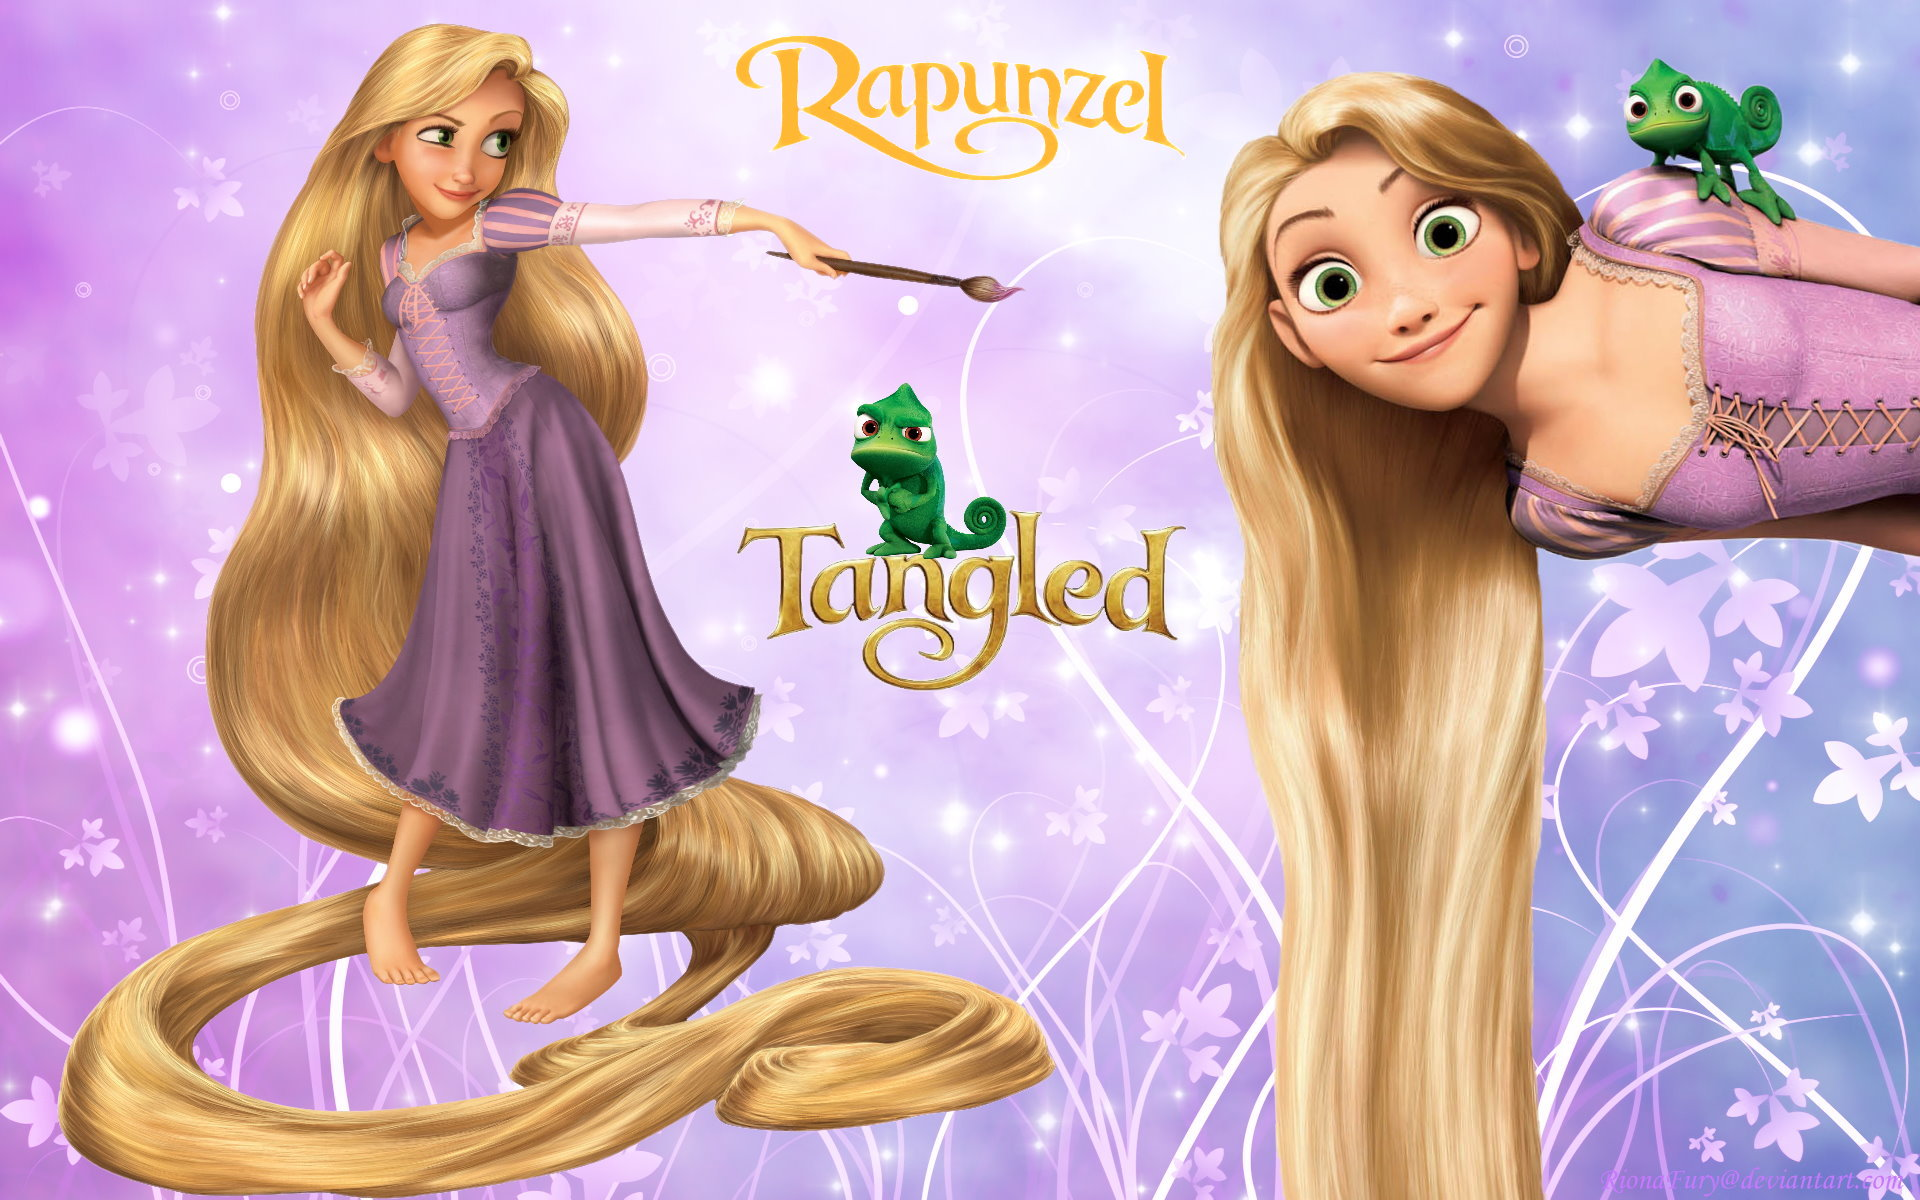 Disney Princess Rapunzel tangled